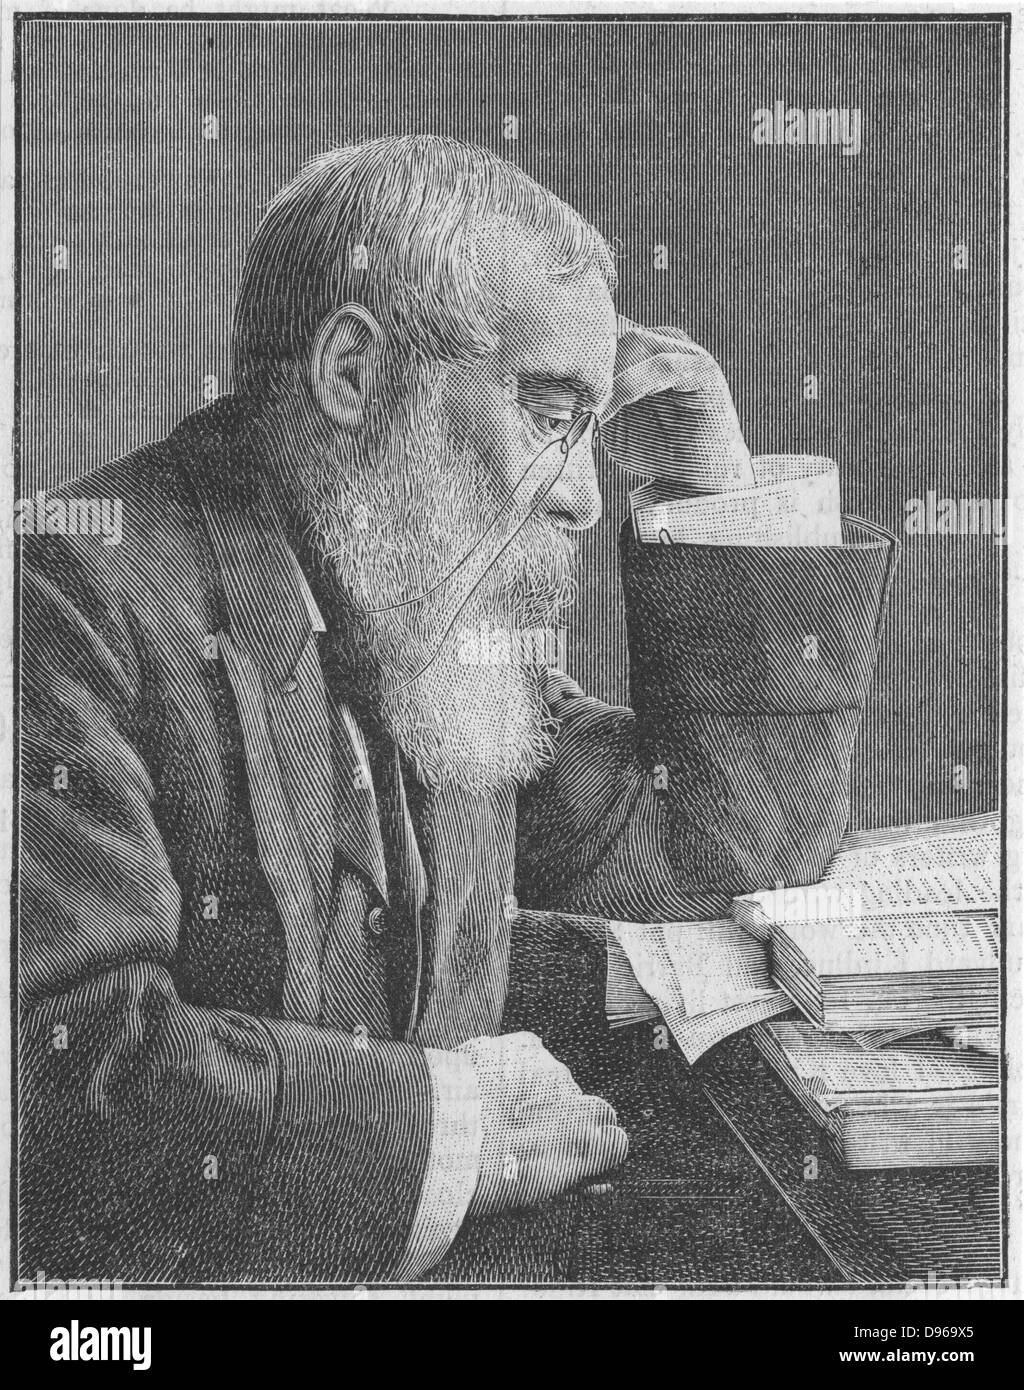 Walter Besant (1836-1901) English social reformer, novelist and editor. First chairman of the Society of Authors - Stock Image